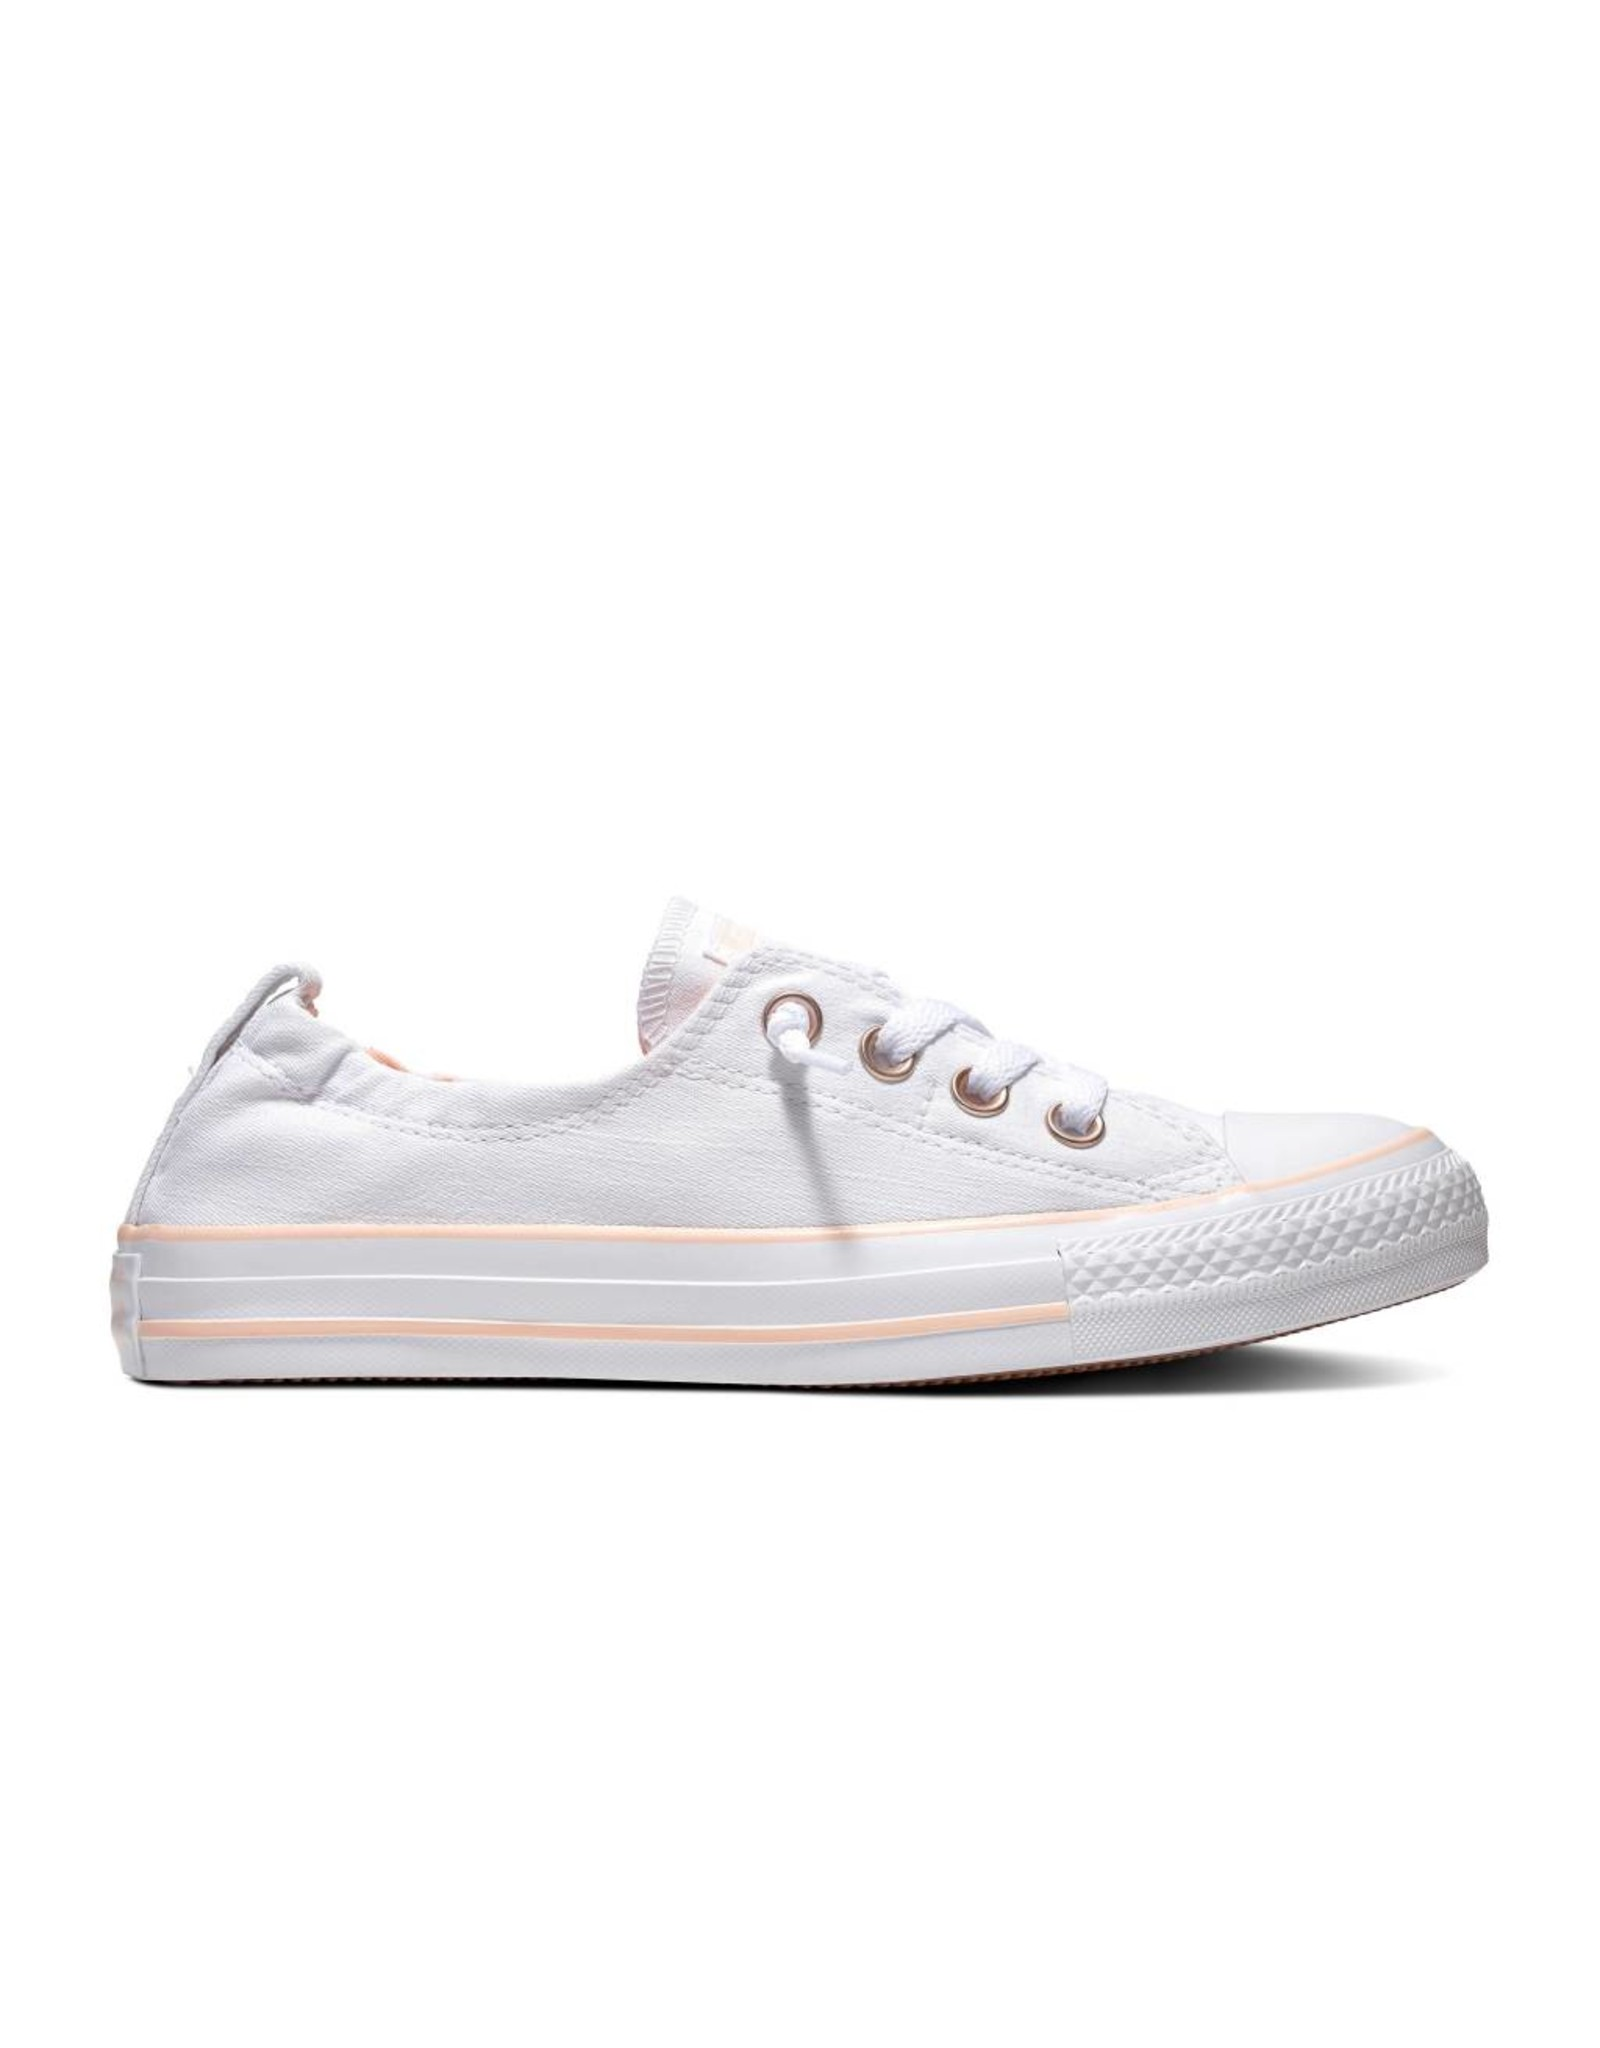 CONVERSE CHUCK TAYLOR ALL STAR SHORELINE SLIP WHITE/WASHED CORAL C13SSW-563454C